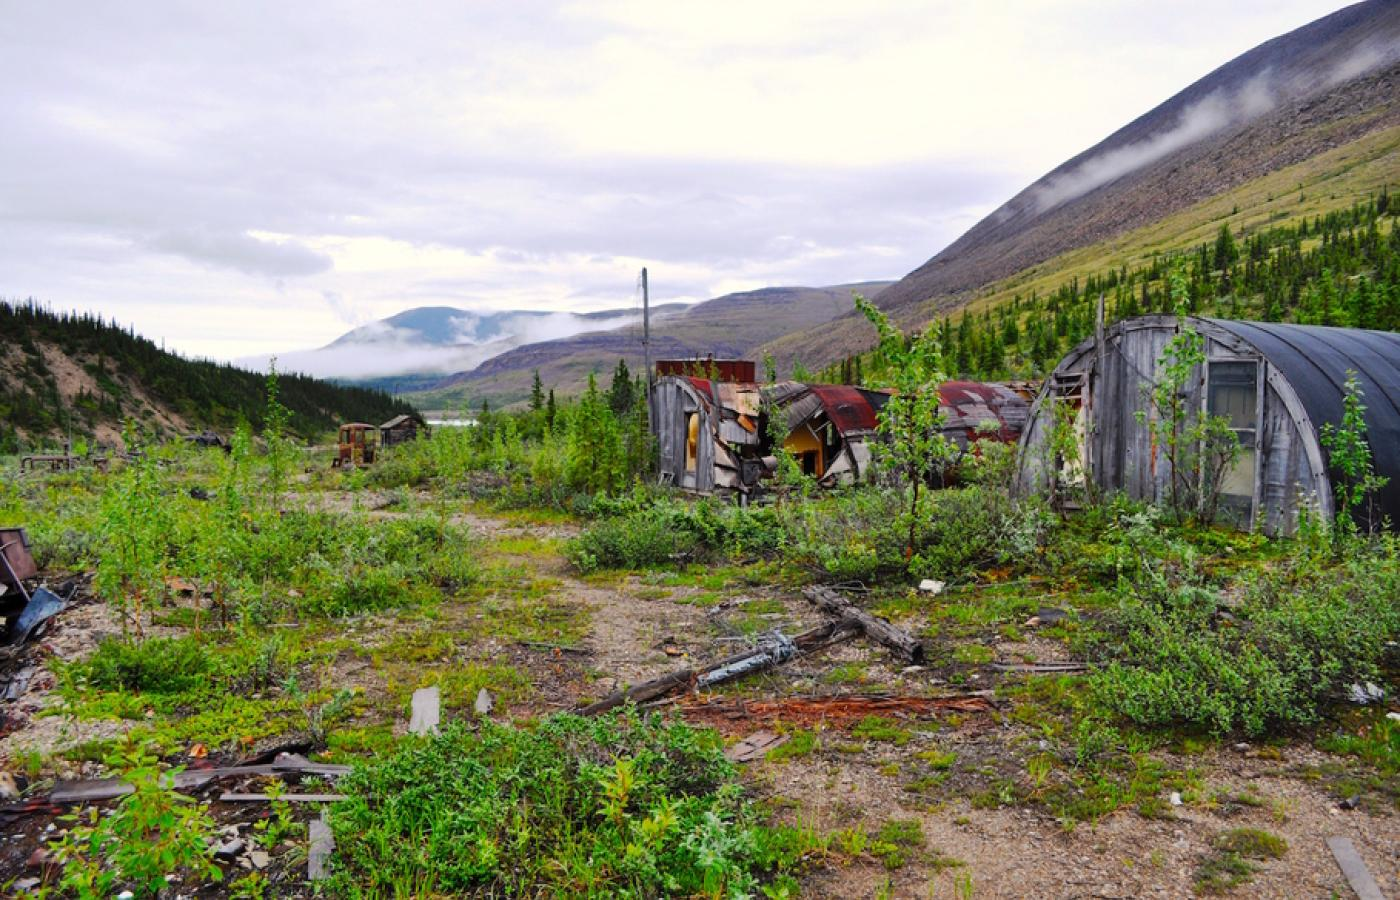 A string of historic WWII relics awaits on the Canol Trail in Canada's Northwest Territories.